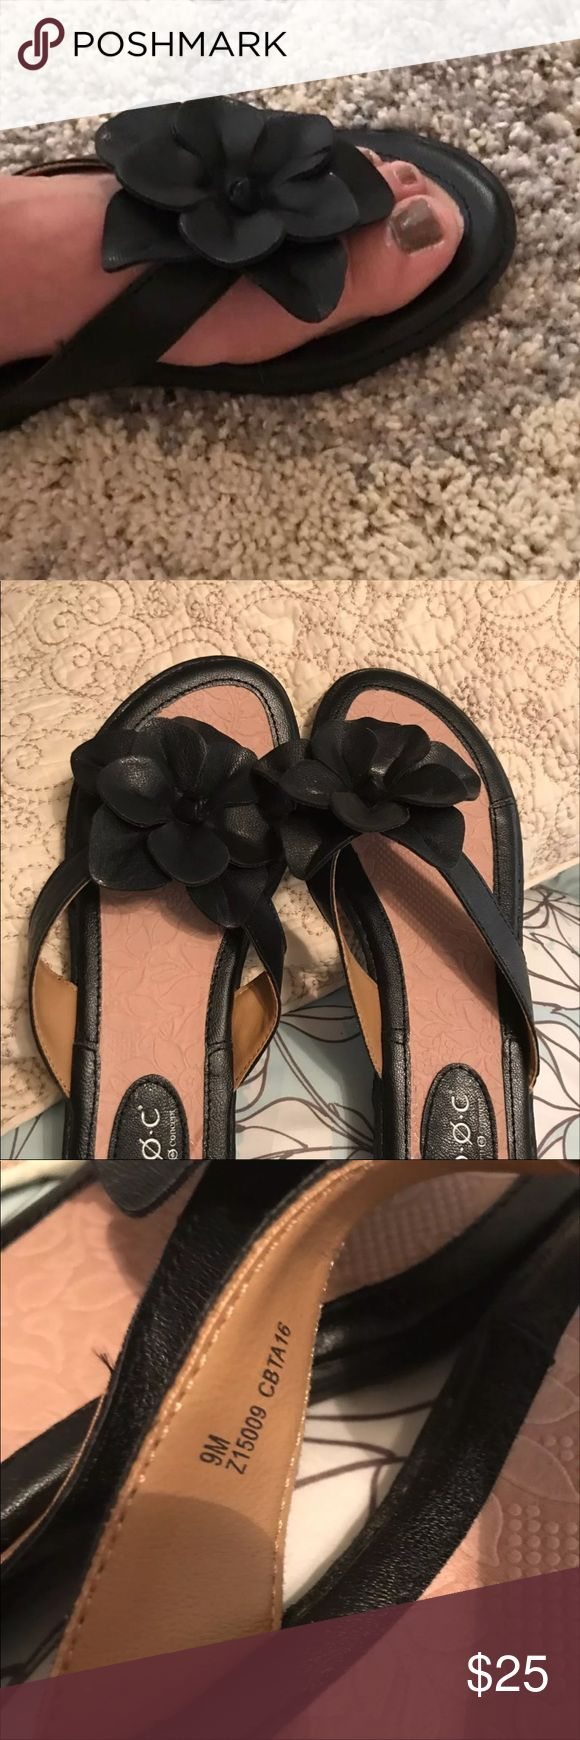 Women's Flip Flops Size 9 These were purchased from famous brand shoes. They are genuine leather with black floral design and brown soles. Brand new and never worn! b.o.c. Shoes Sandals